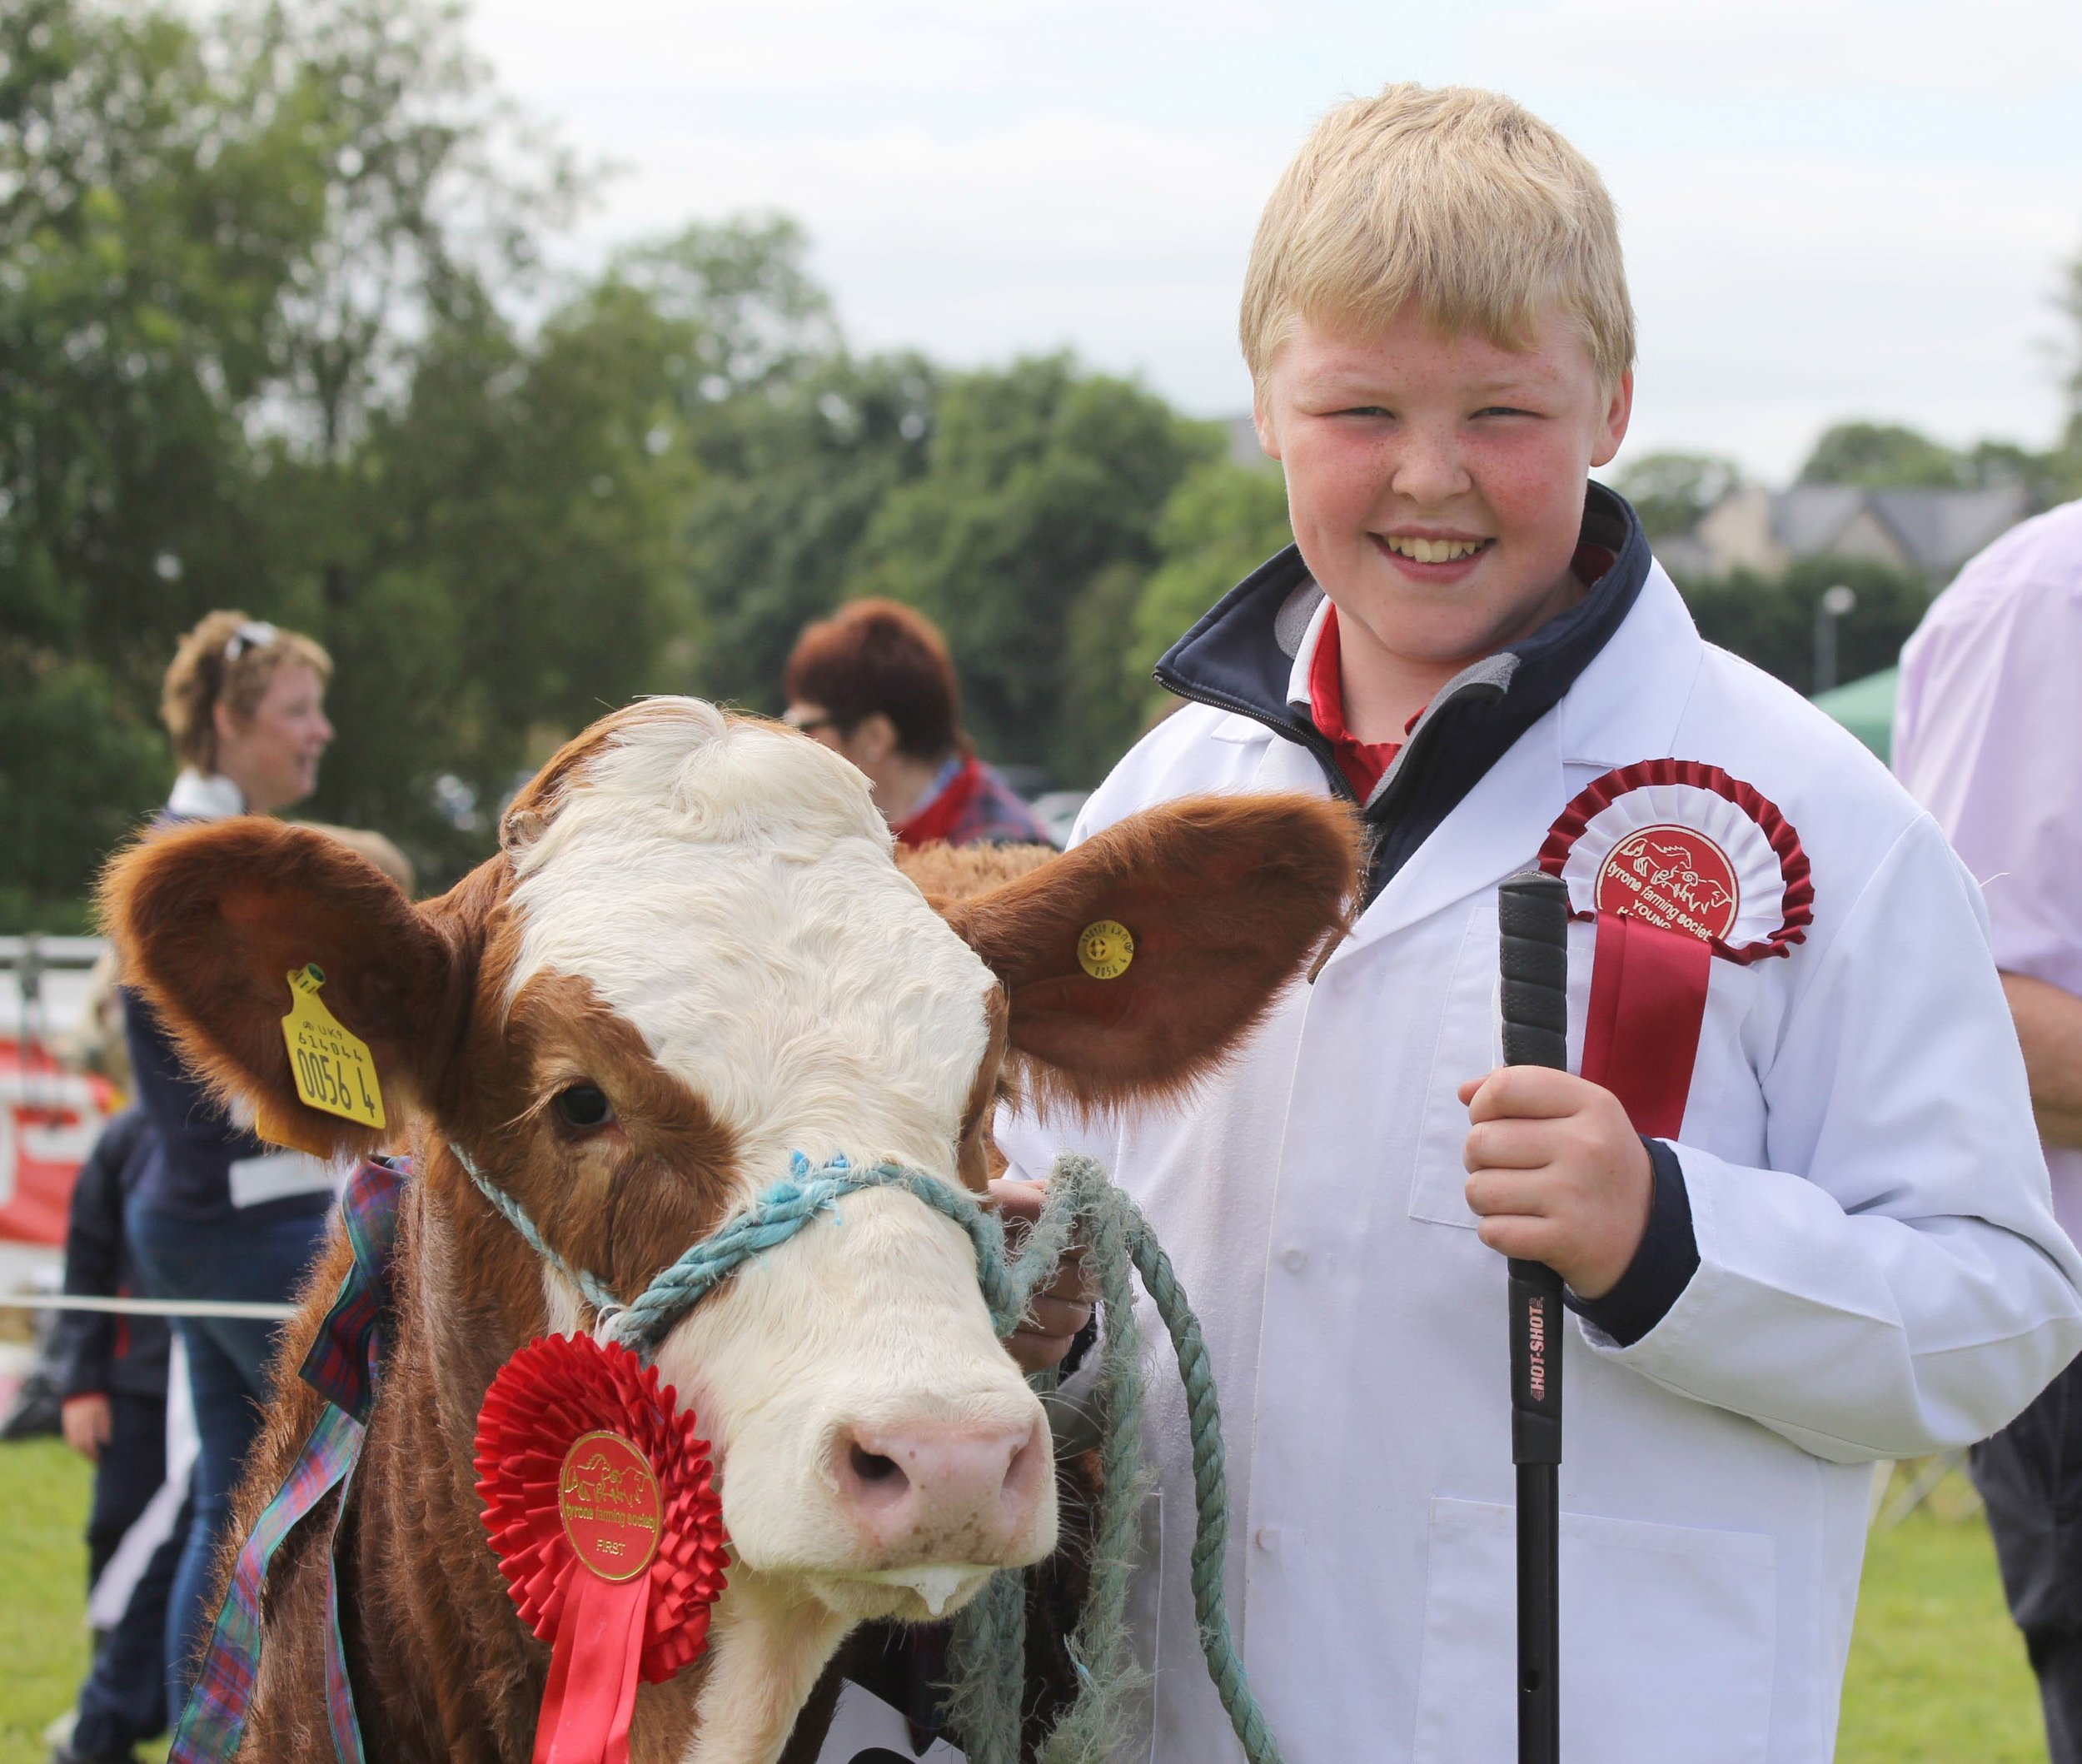 Thomas McAllister, Dungannon, was the winner of the junior young handlers class at the NI National Simmental Show.